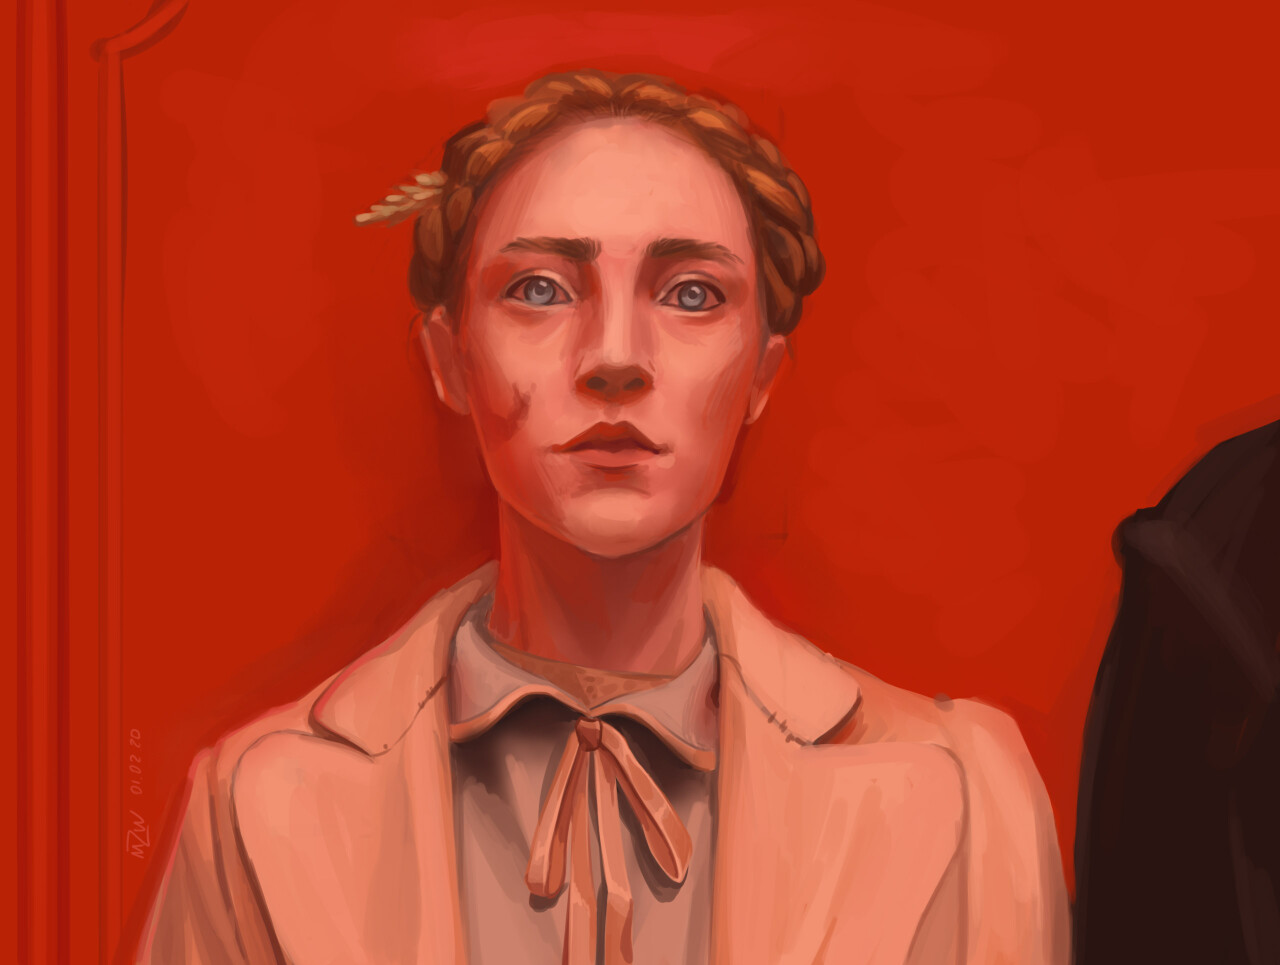 Saoirse Ronan from The Grand Budapest Hotel